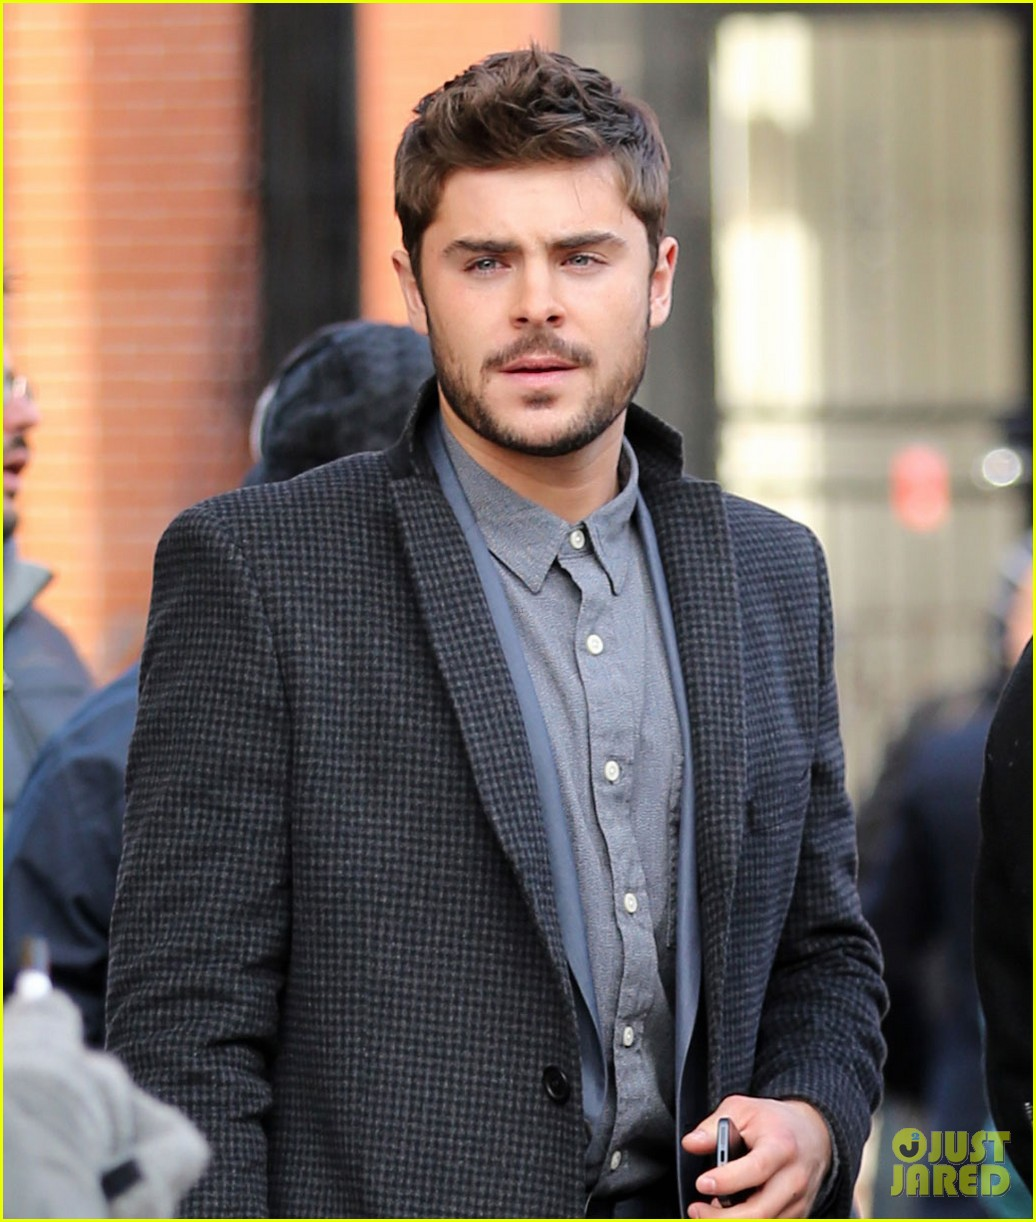 Zac Efron HairStyles - Men Hair Styles Collection